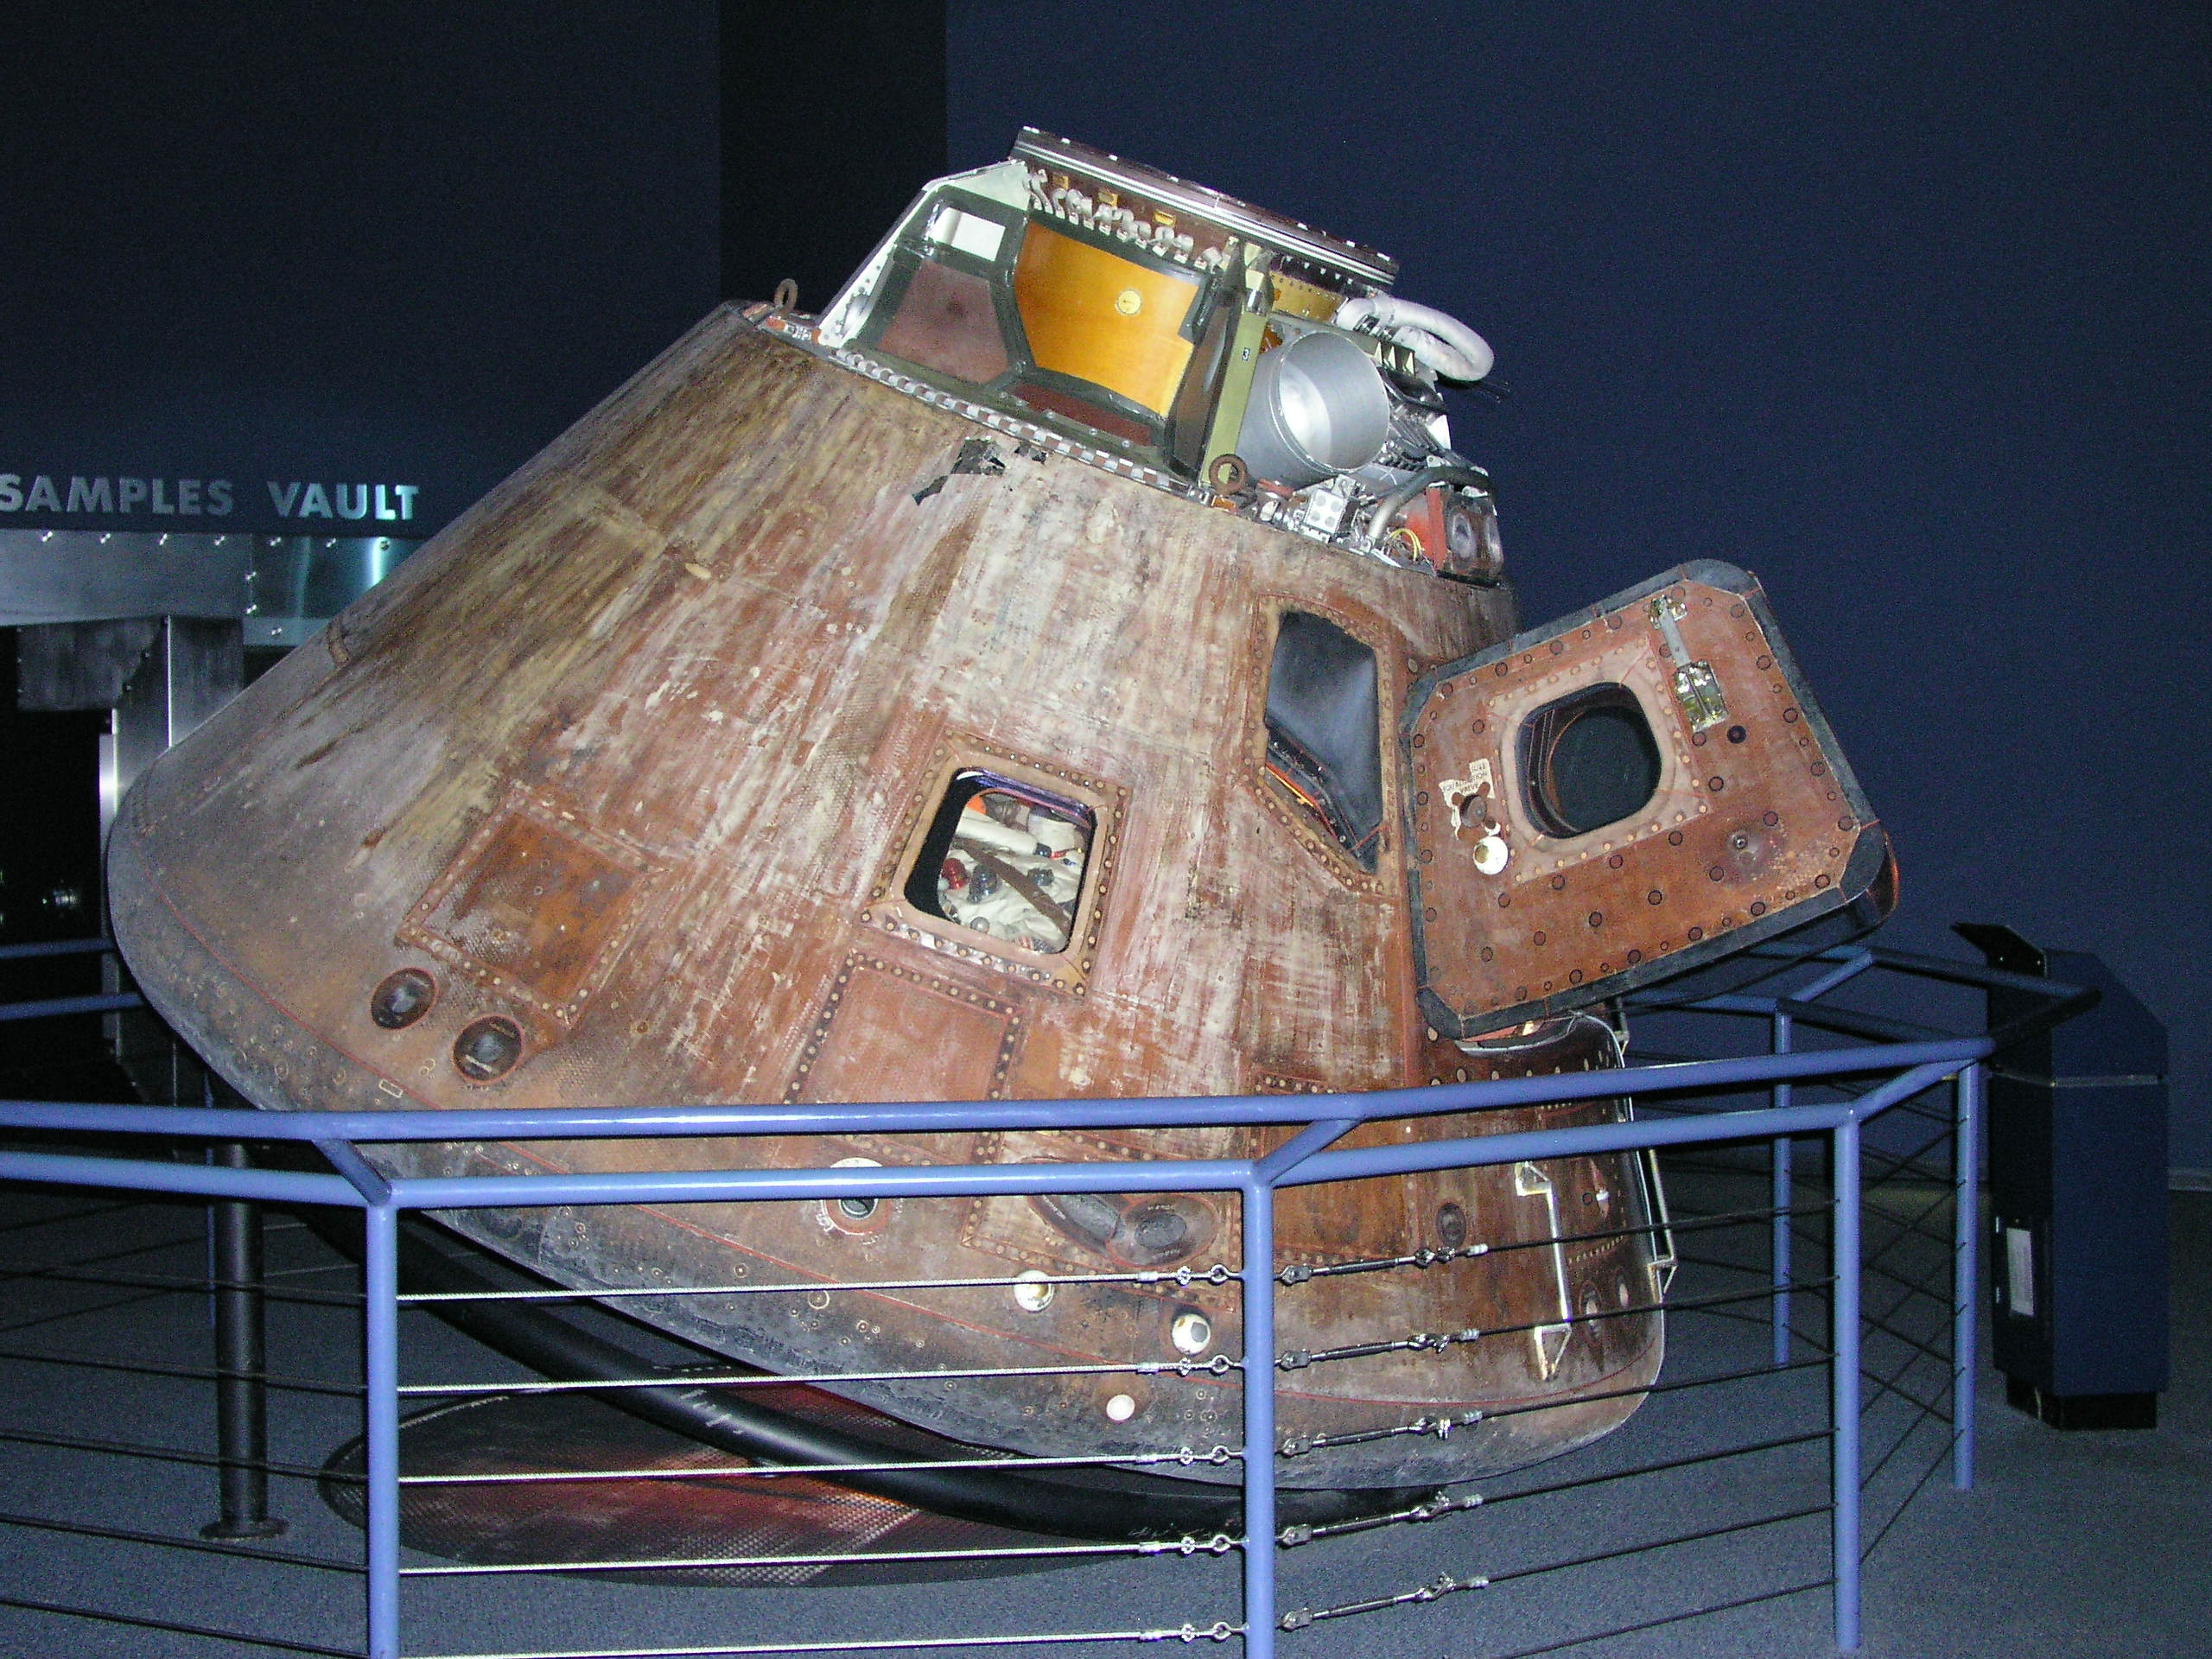 Houston Apollo Command Module (page 2) - Pics about space